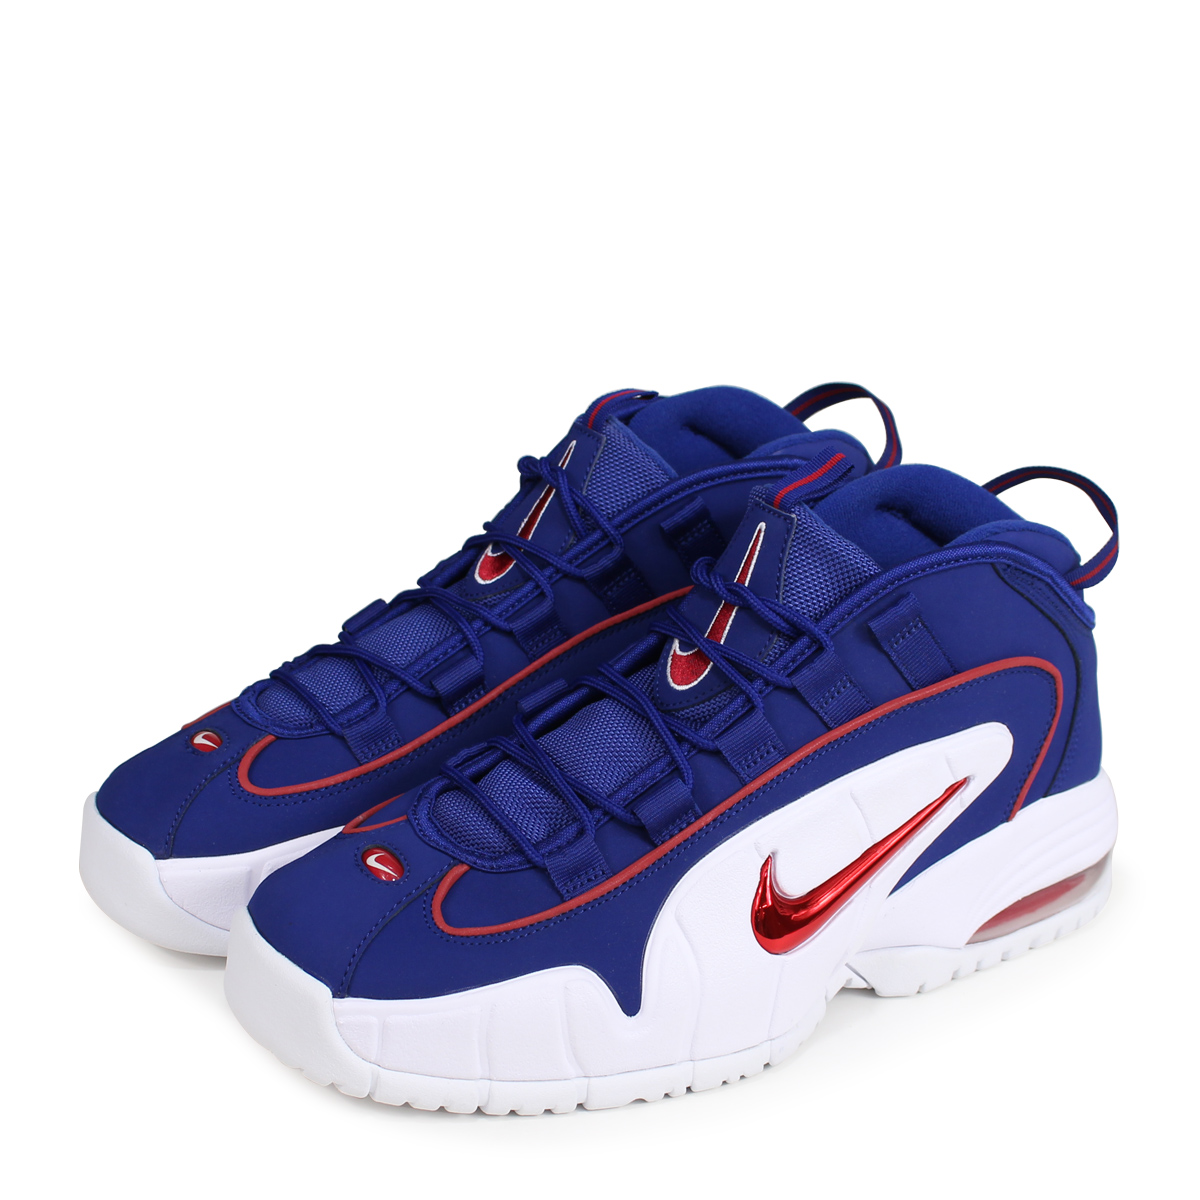 ALLSPORTS  NIKE AIR MAX PENNY Kie Ney AMAX penny sneakers men ... ace5d2eef